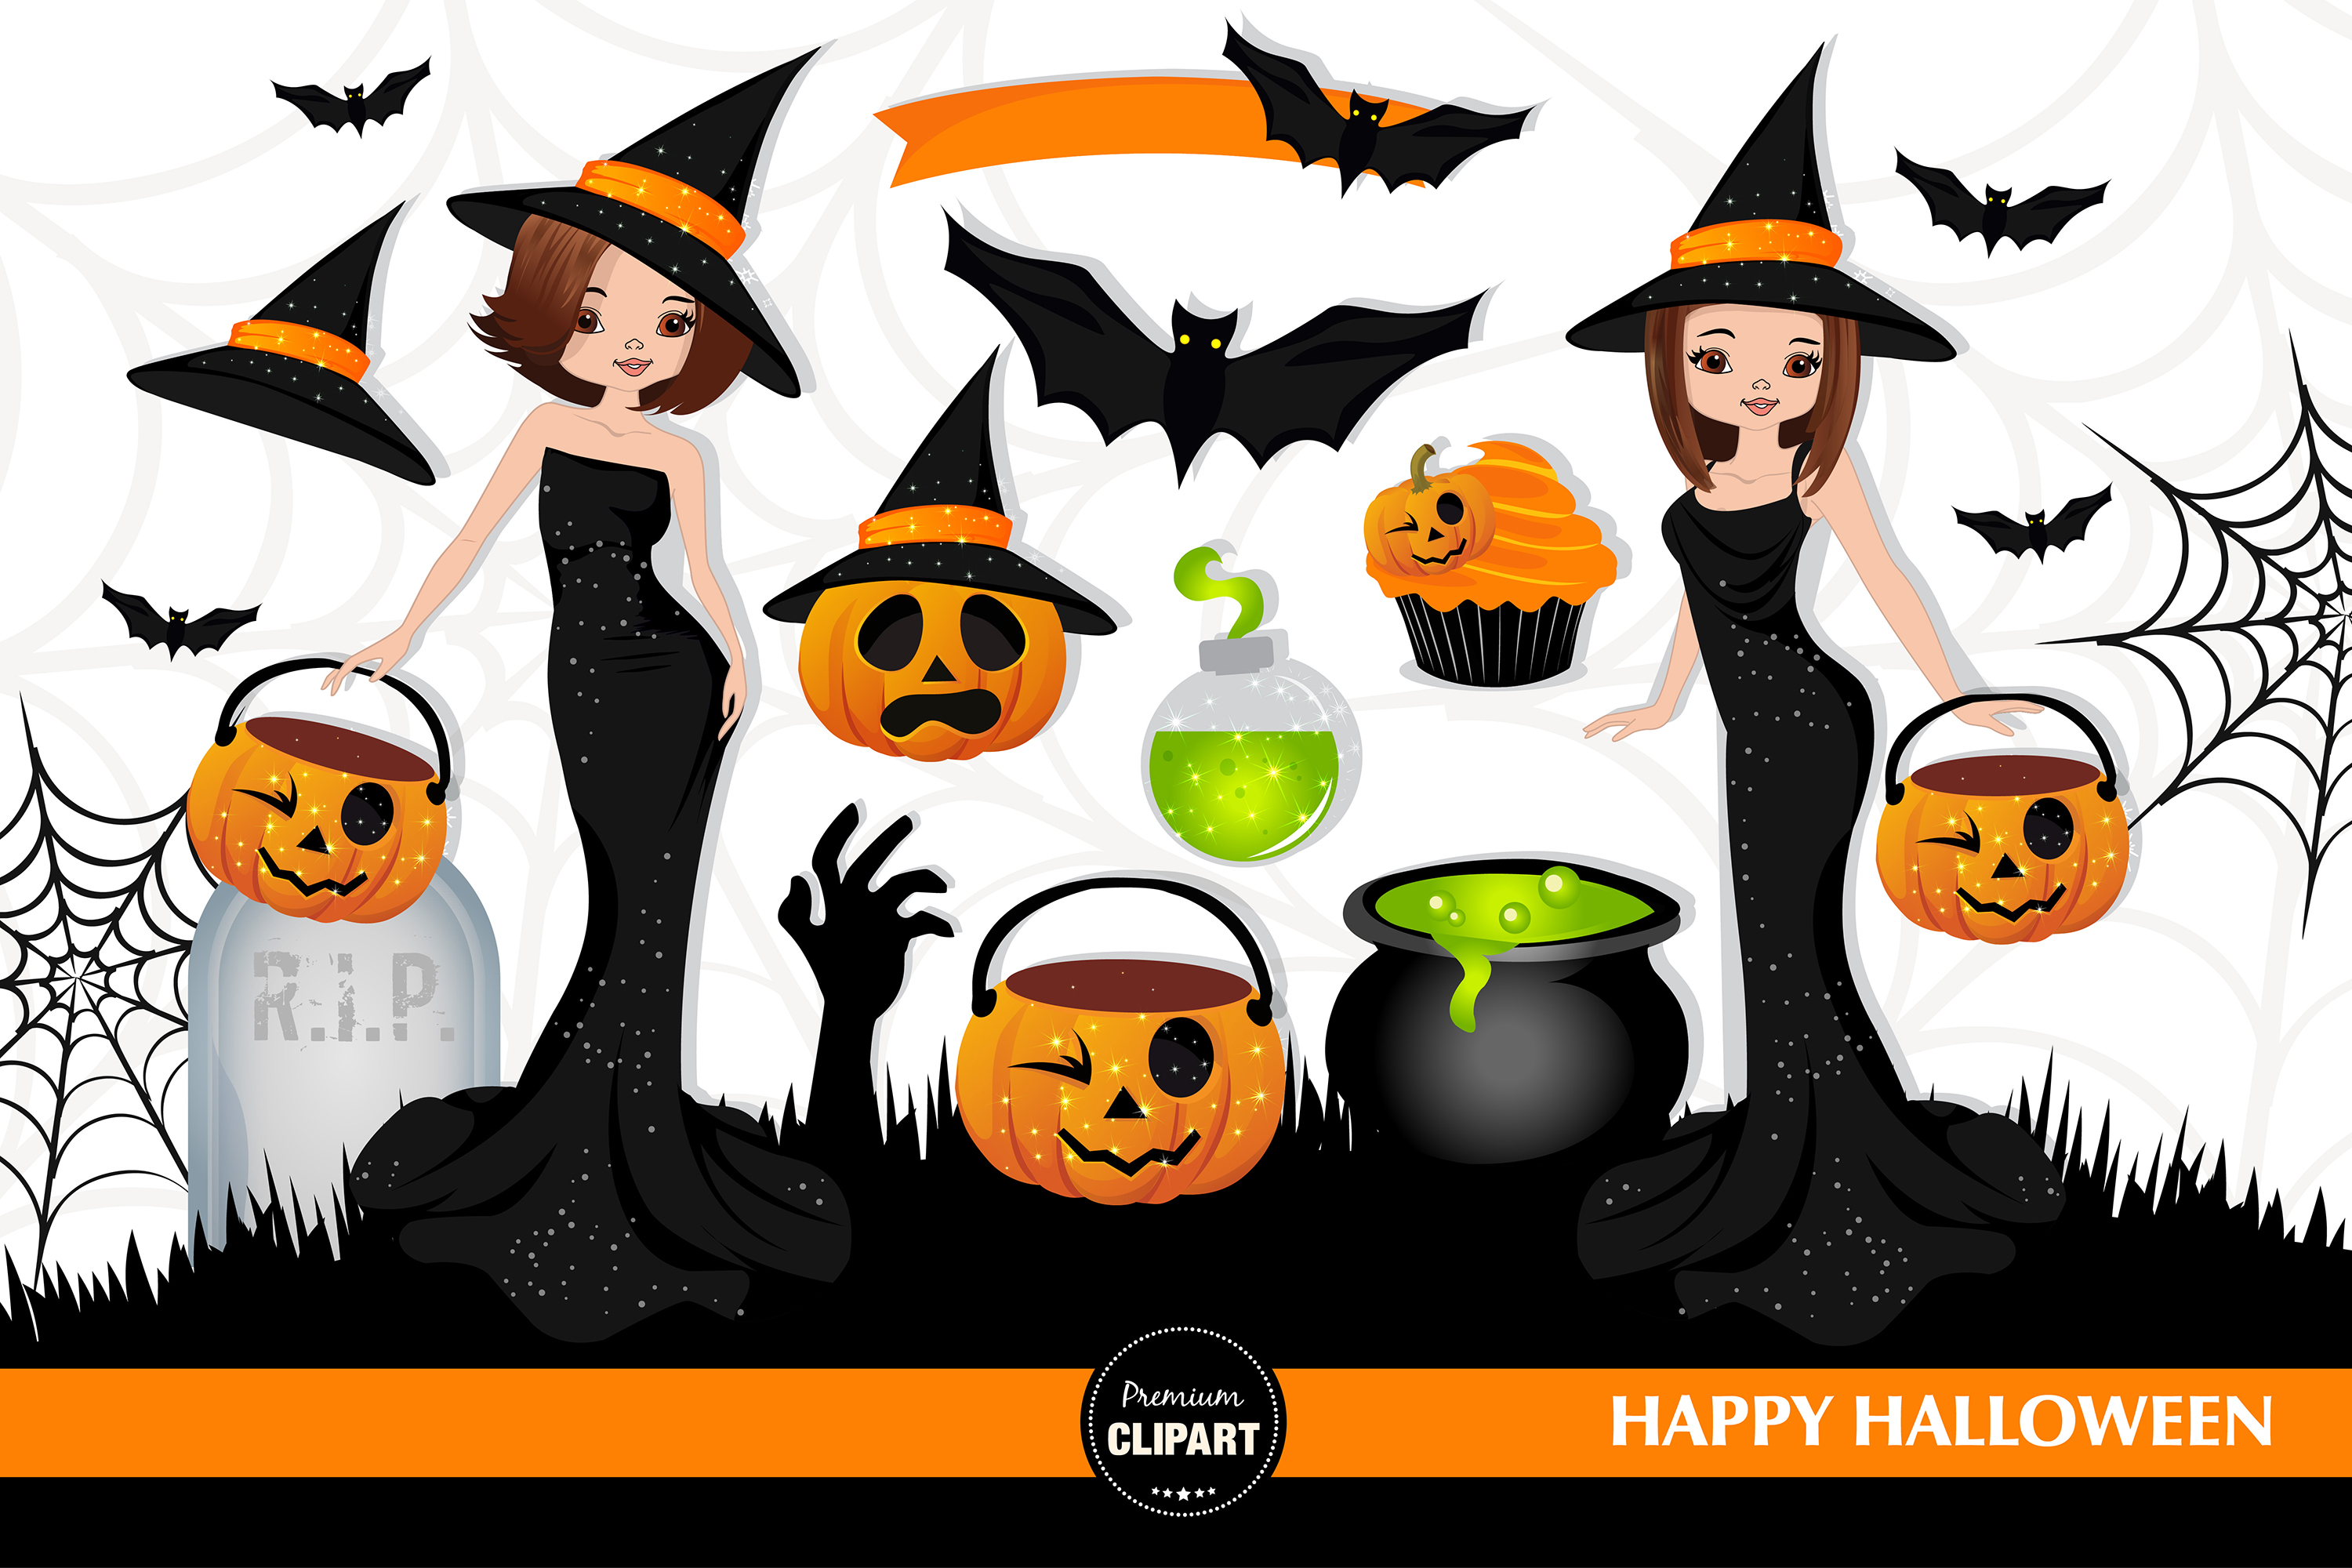 Halloween witch, Halloween illustrations, Halloween pumpkin example image 2